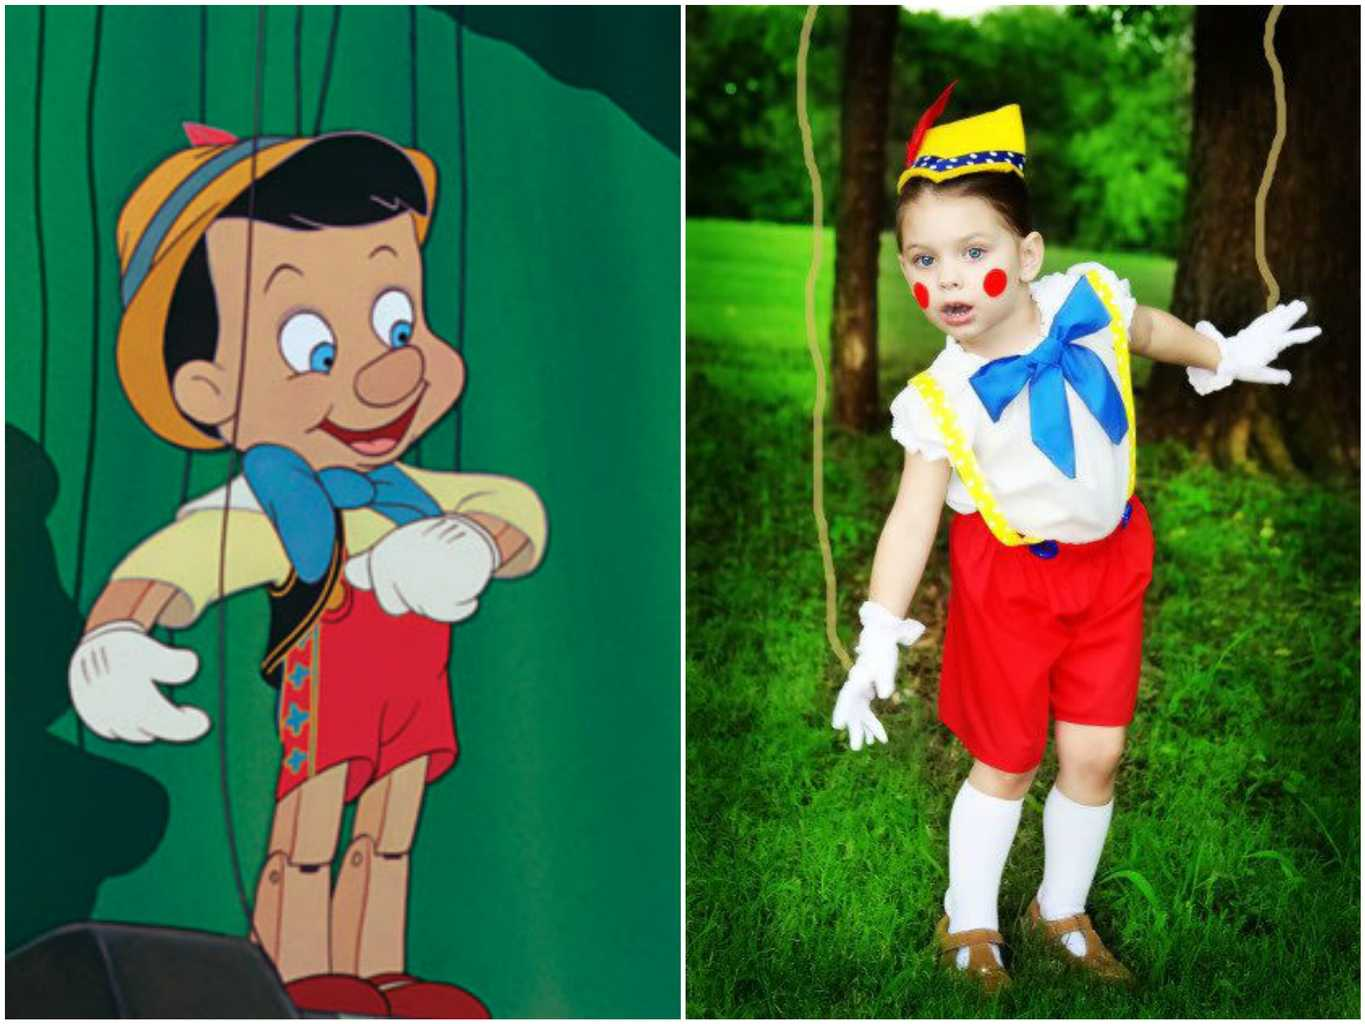 World book day 51 easy diy costume ideas closer a classic book character you cant go far wrong with pinocchio credit disney etsy heavenly things for you disney etsy heavenly things for you solutioingenieria Choice Image